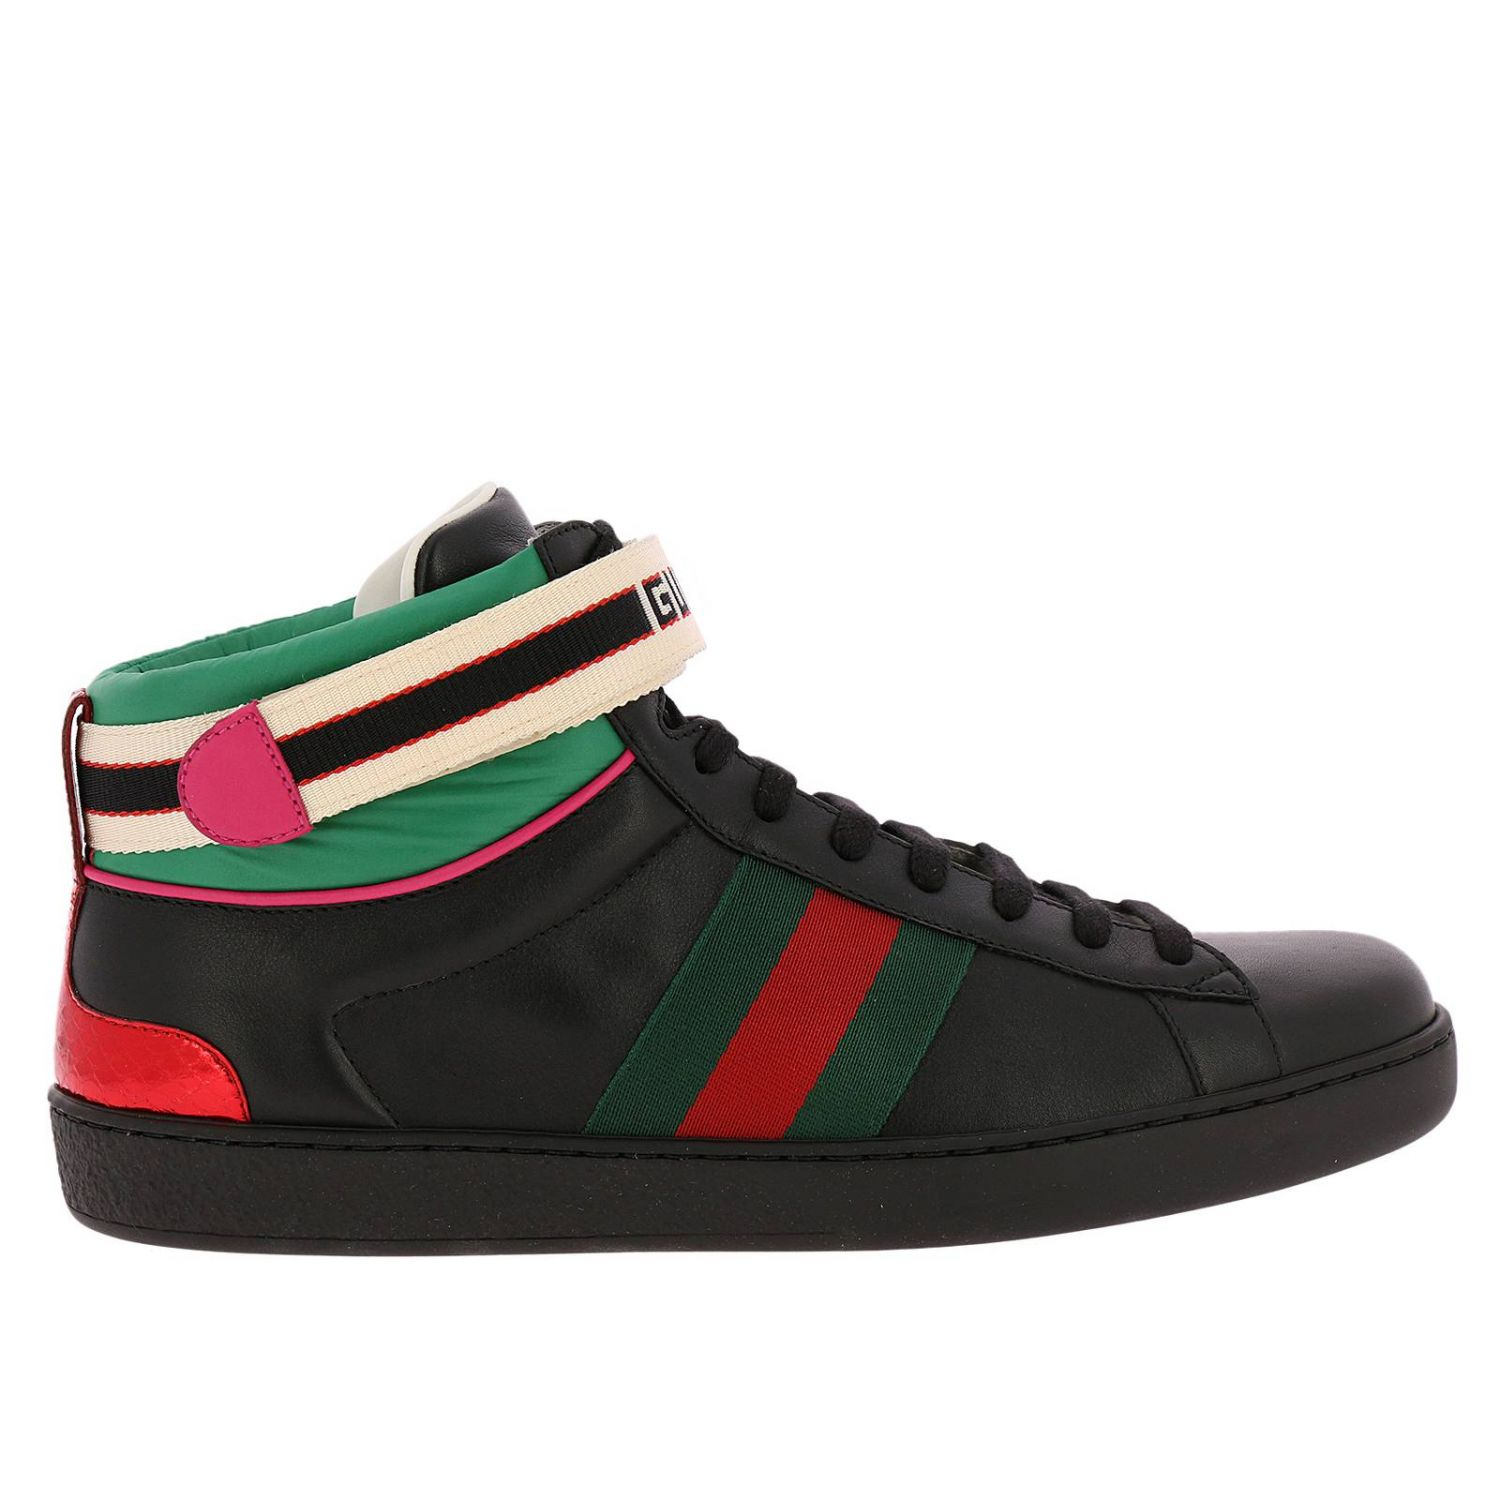 Sneakers New Ace High Sneakers In Soft Leather With Web Gucci Nylon Bands 8399316